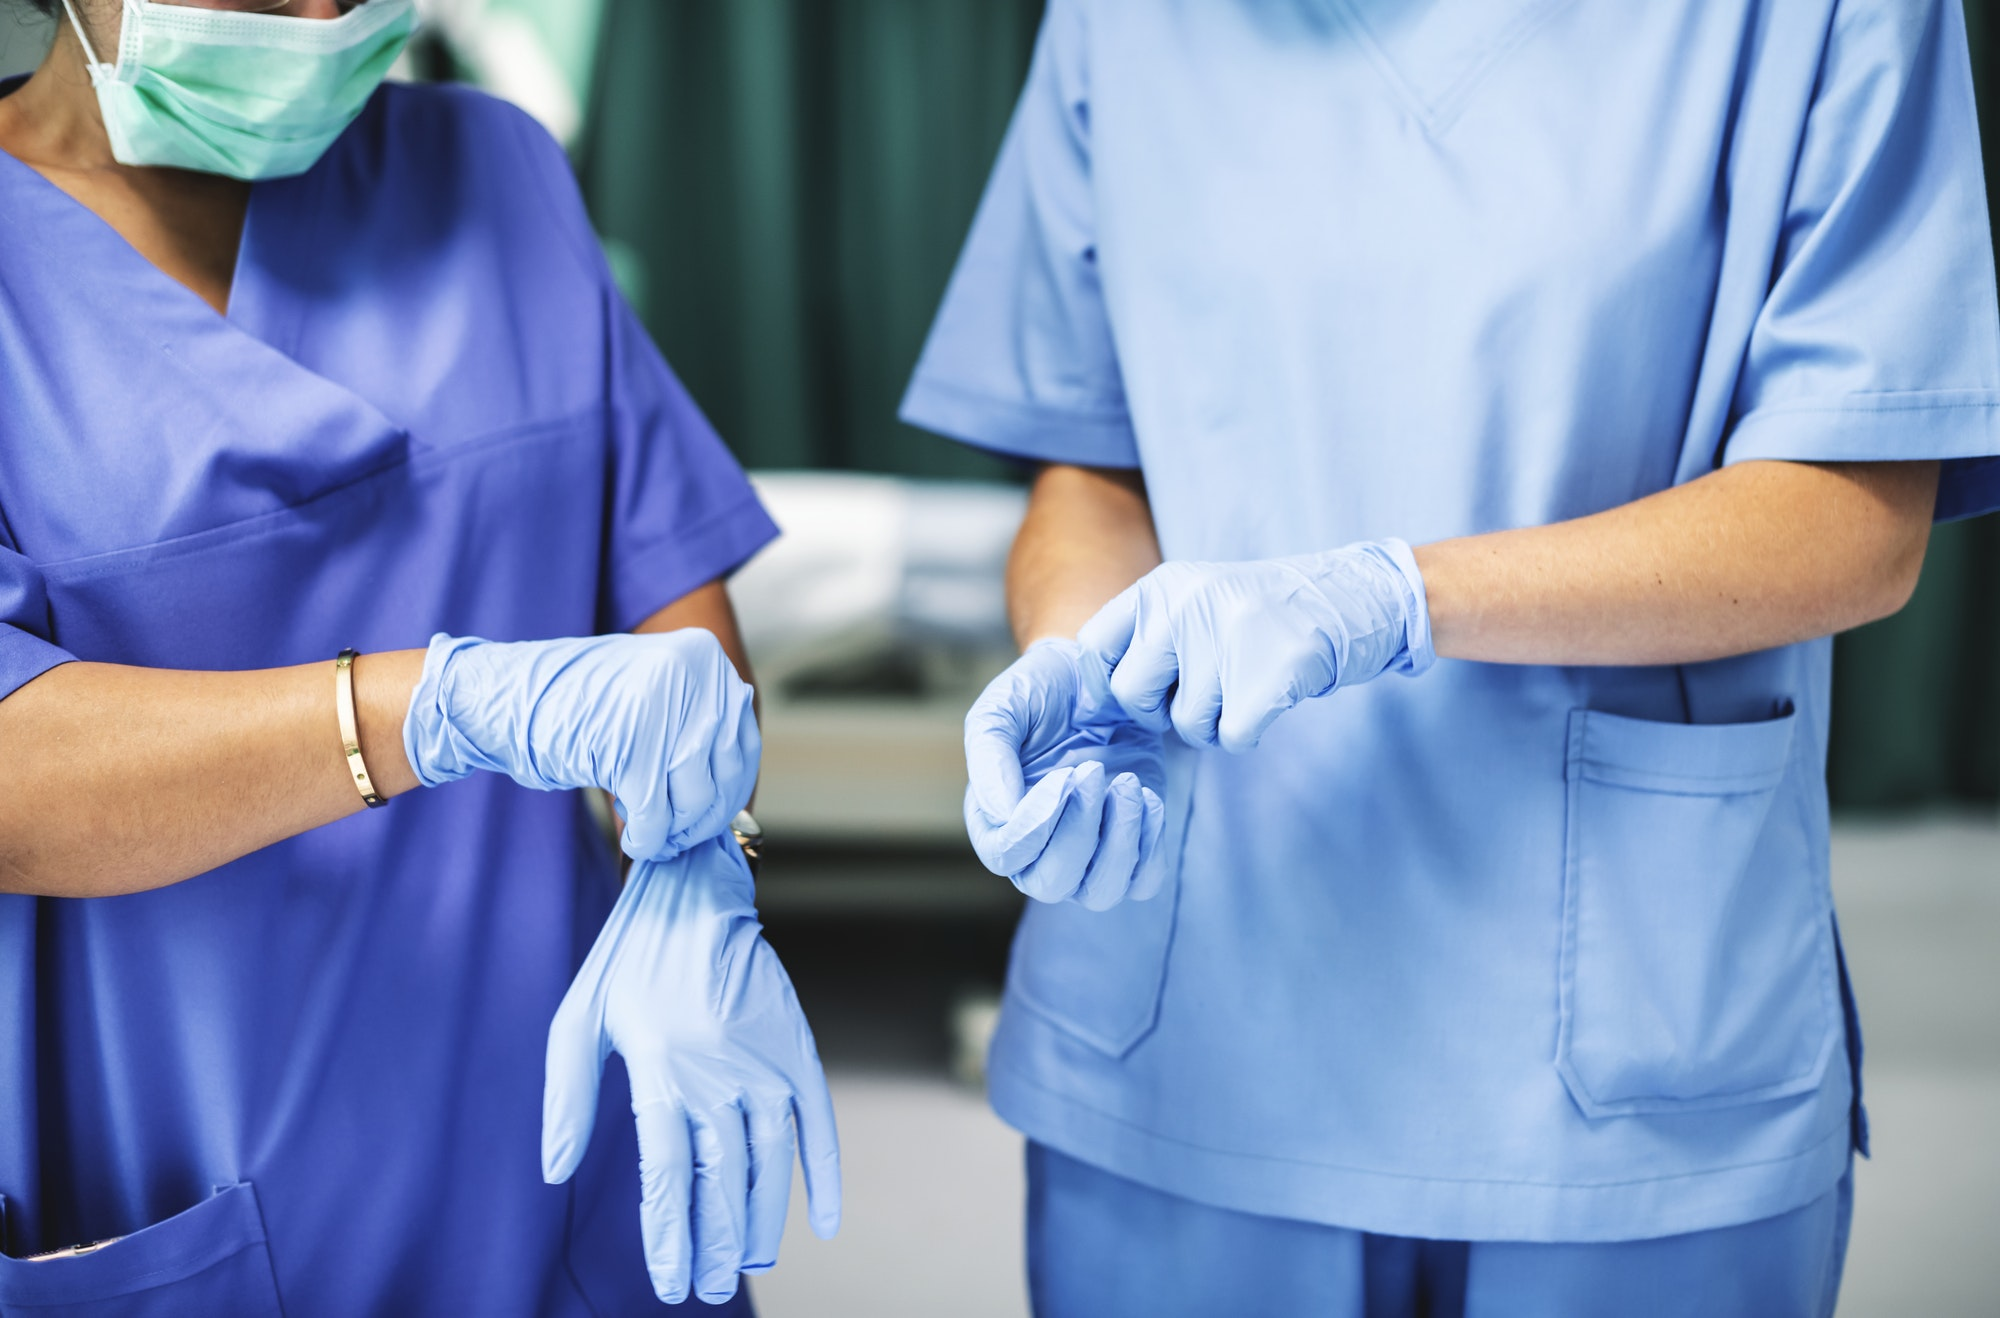 Surgeons wearing gloves preparing for surgery